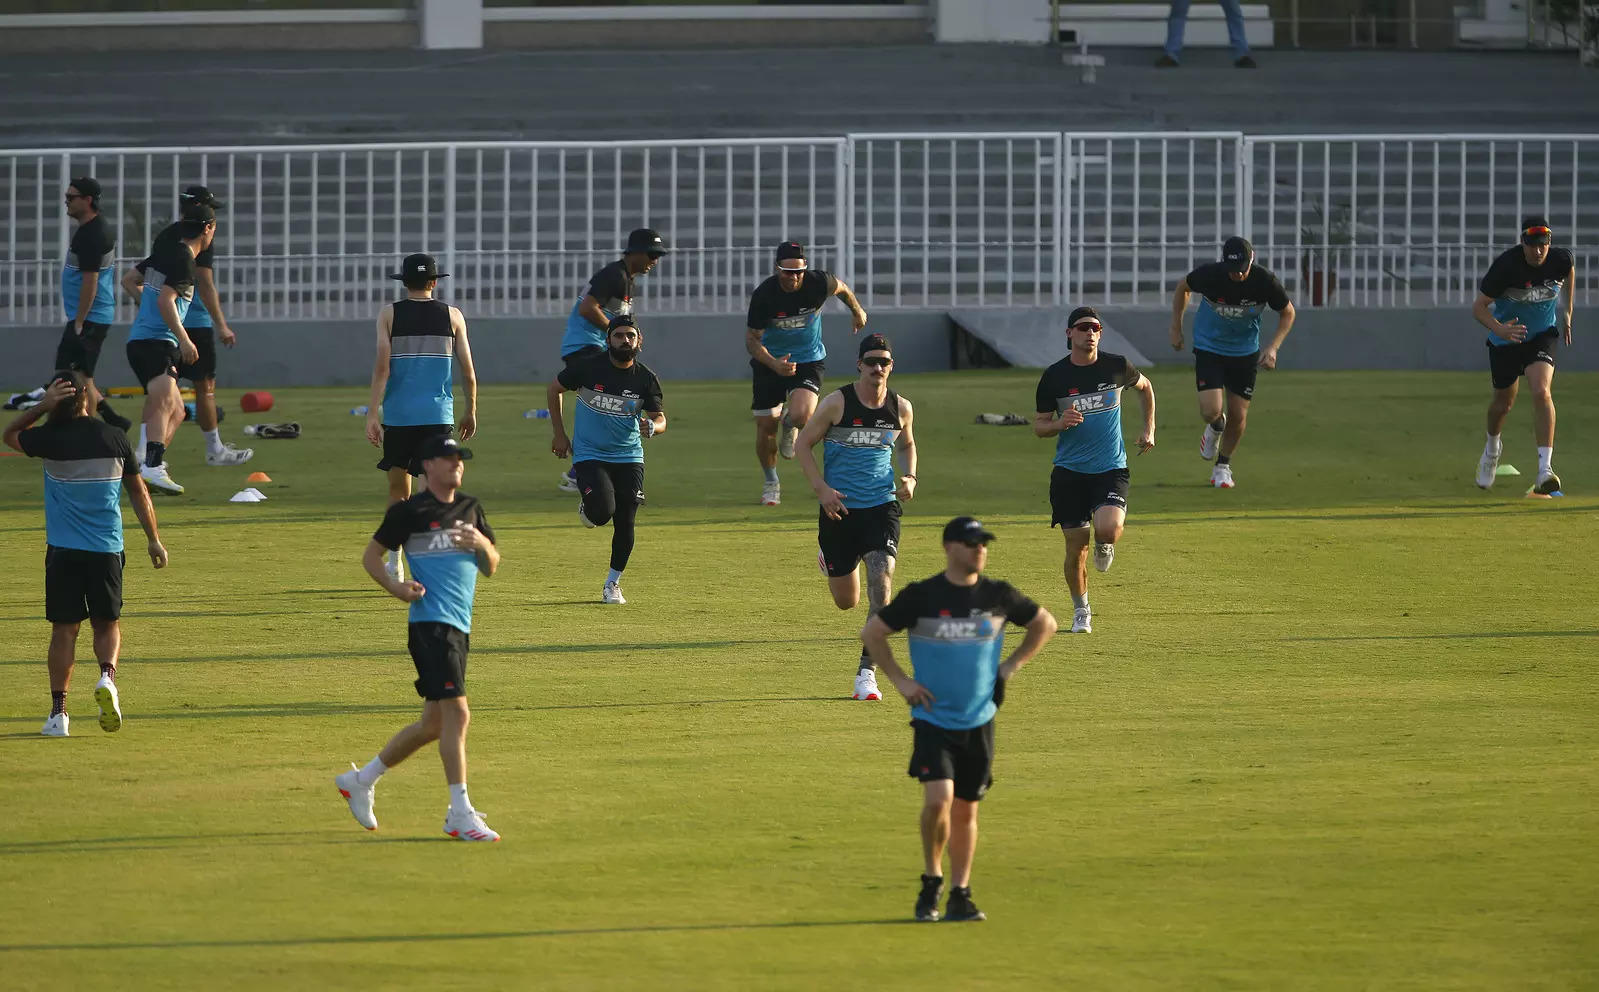 Govt claims NZ Cricket received threat emails from Mumbai, using a Singapore VPN